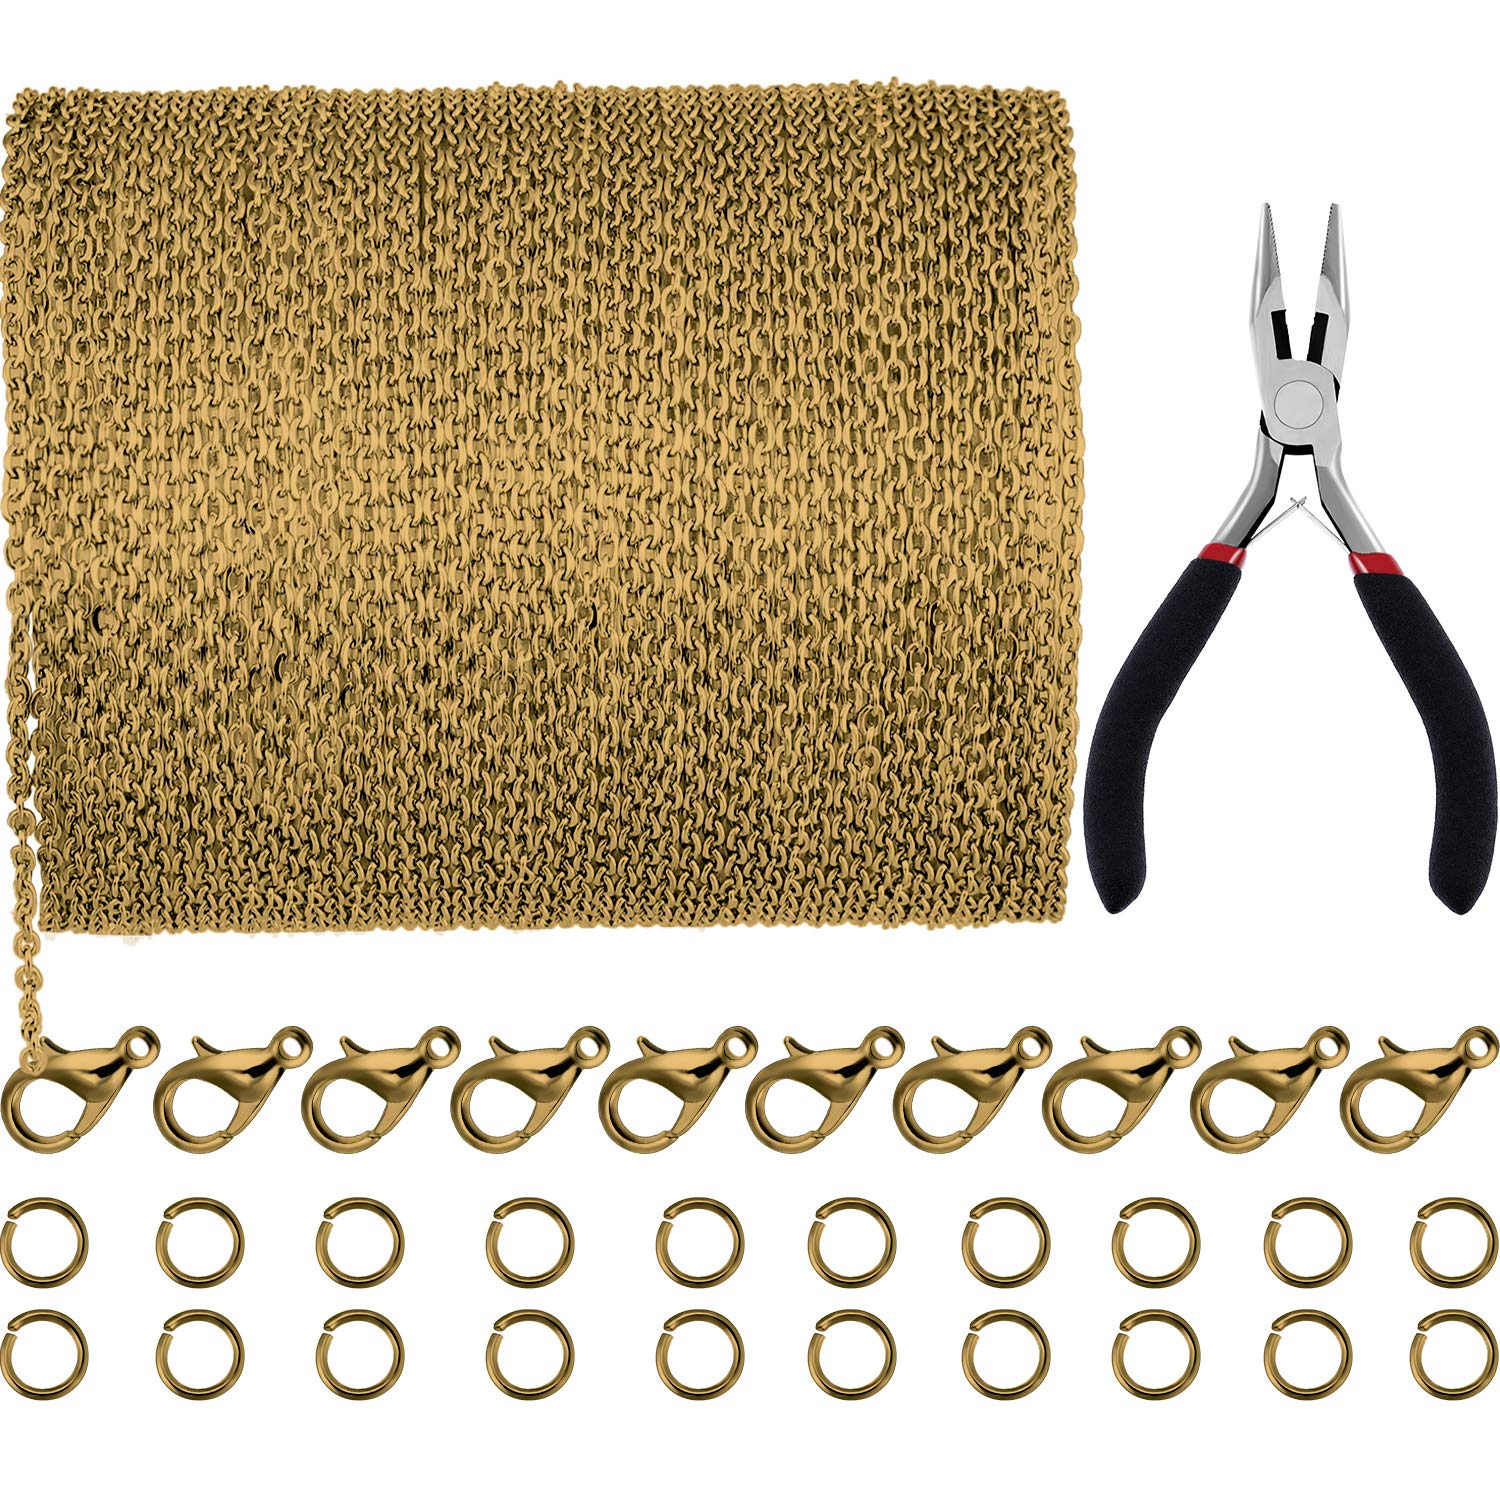 Jovitec 39.4 Feet 2 mm Link Chain Necklace Jewelry Plier with 30 Pieces Lobster Clasps and 100 Pieces Jump Rings for Jewelry Accessories DIY (Bronze)